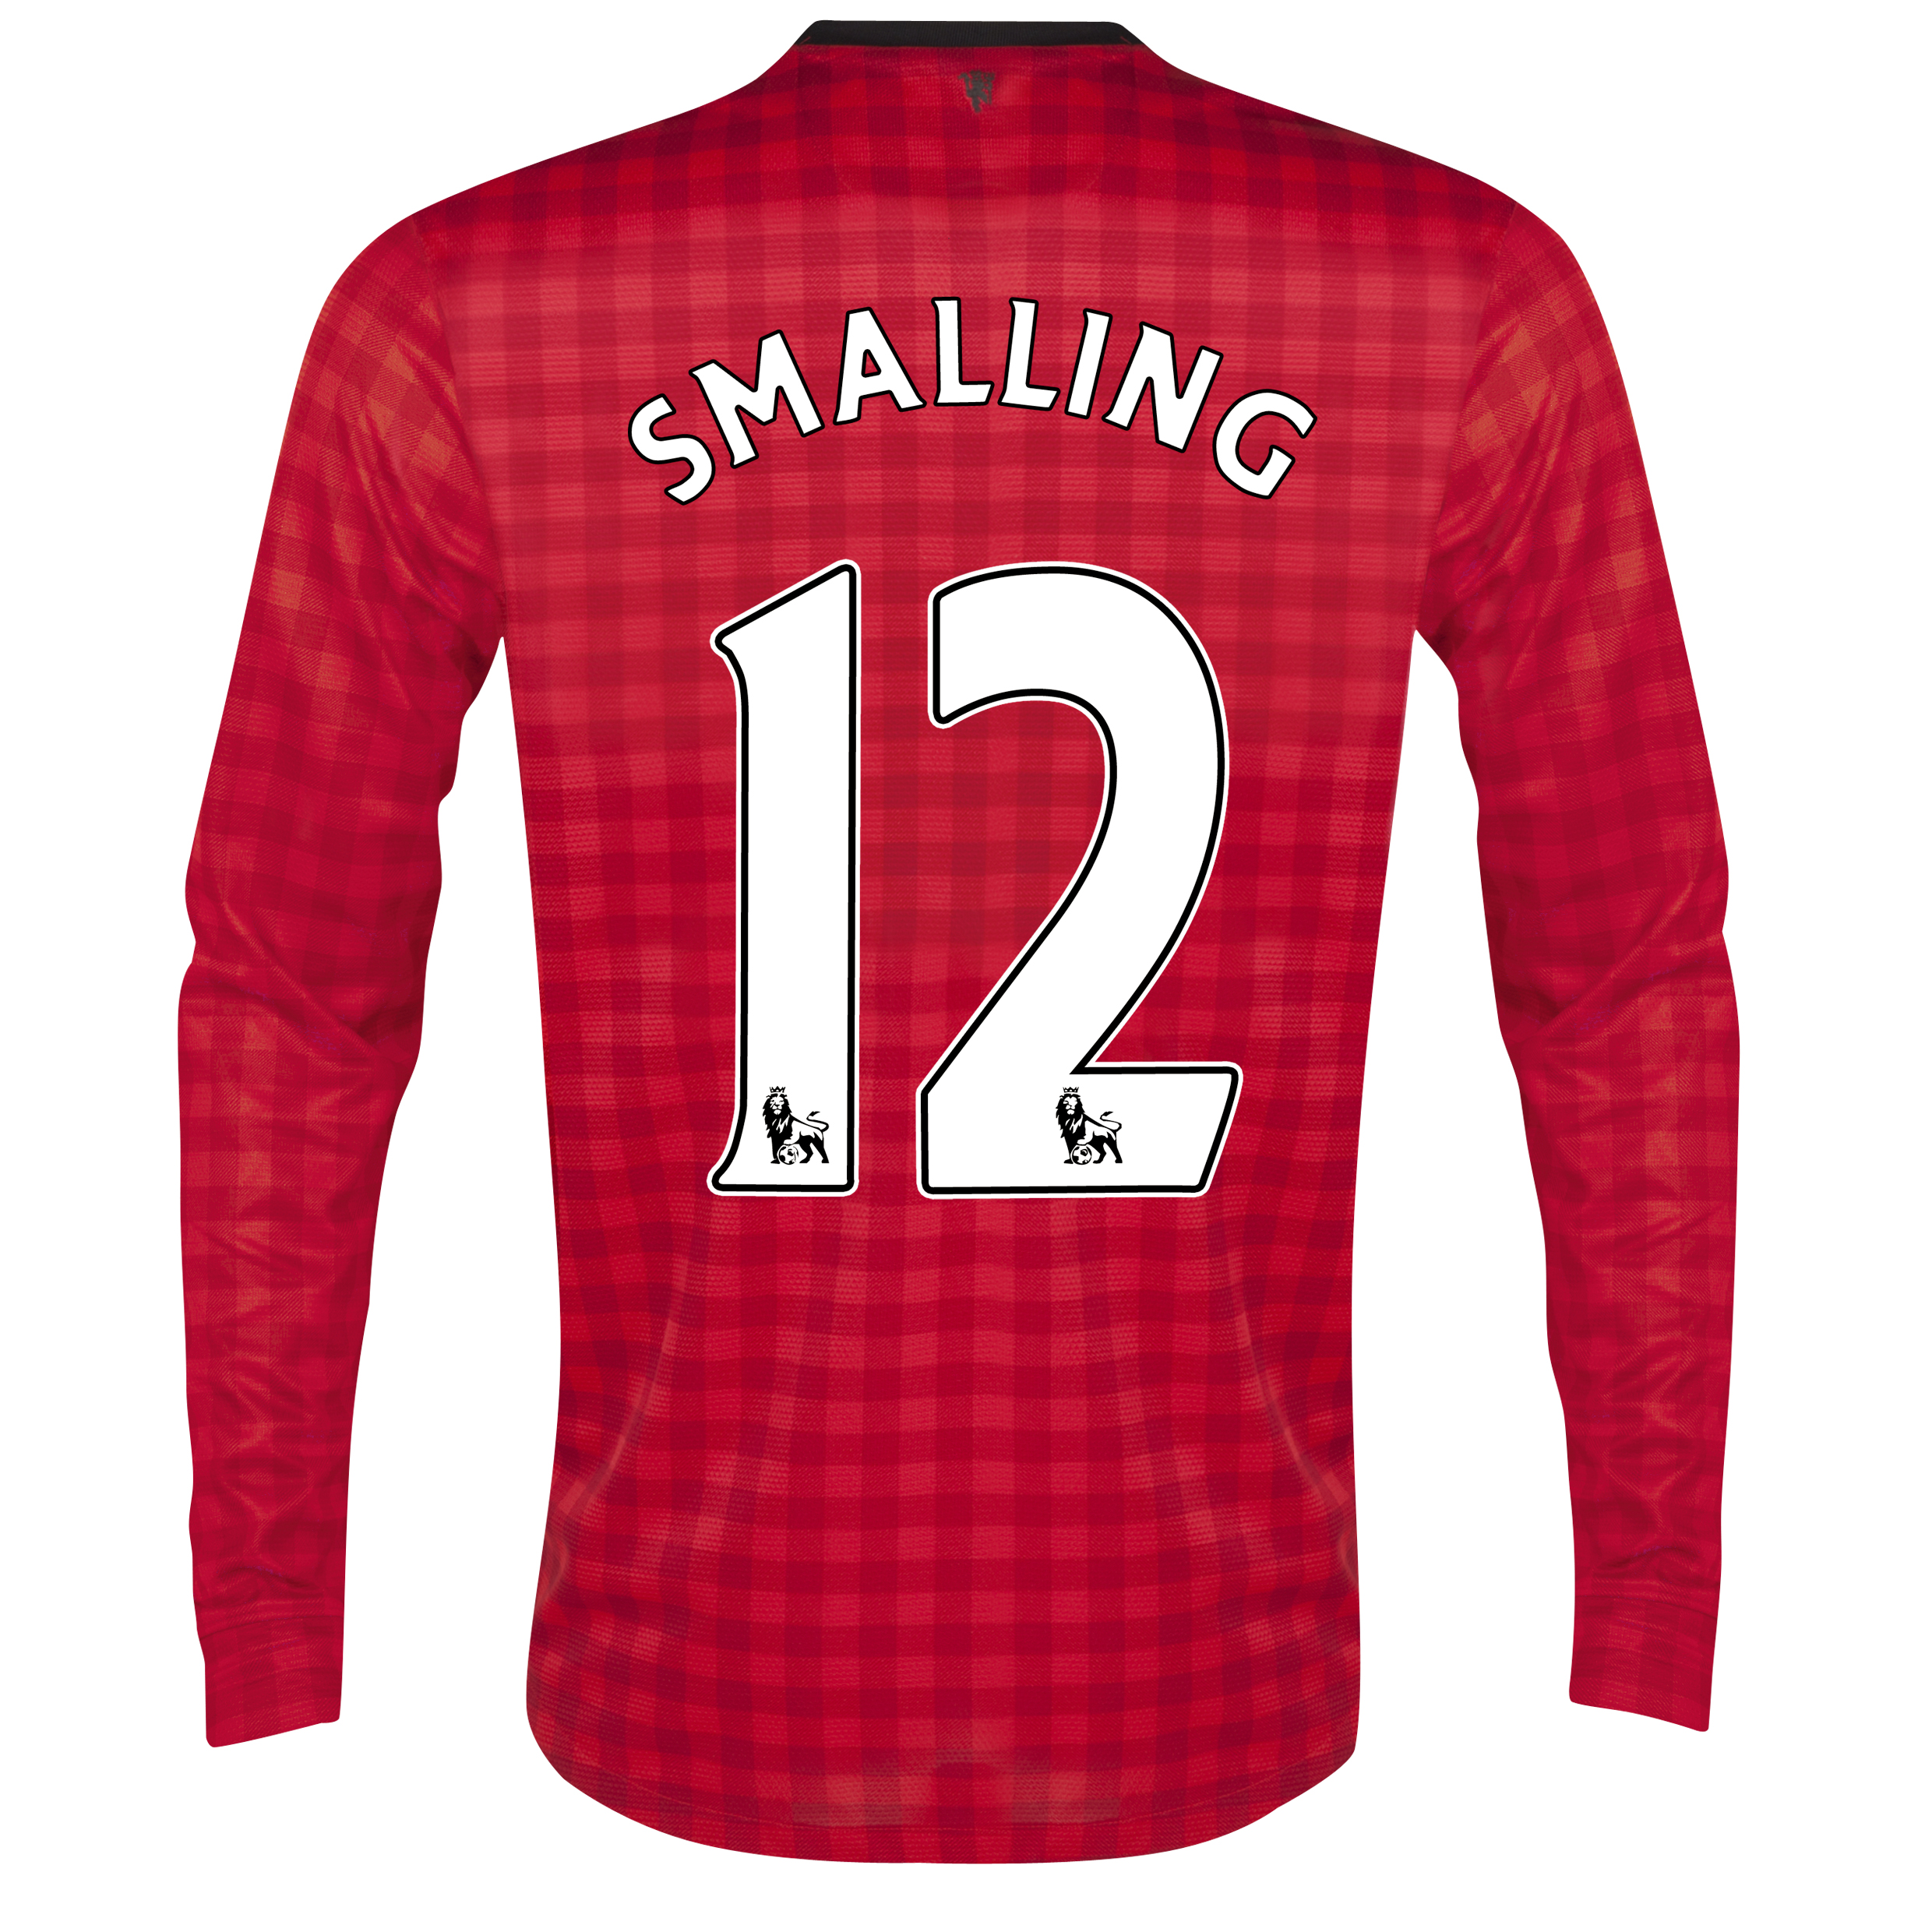 Manchester United Home Shirt 2012/13 - Long Sleeved with Smalling 12 printing